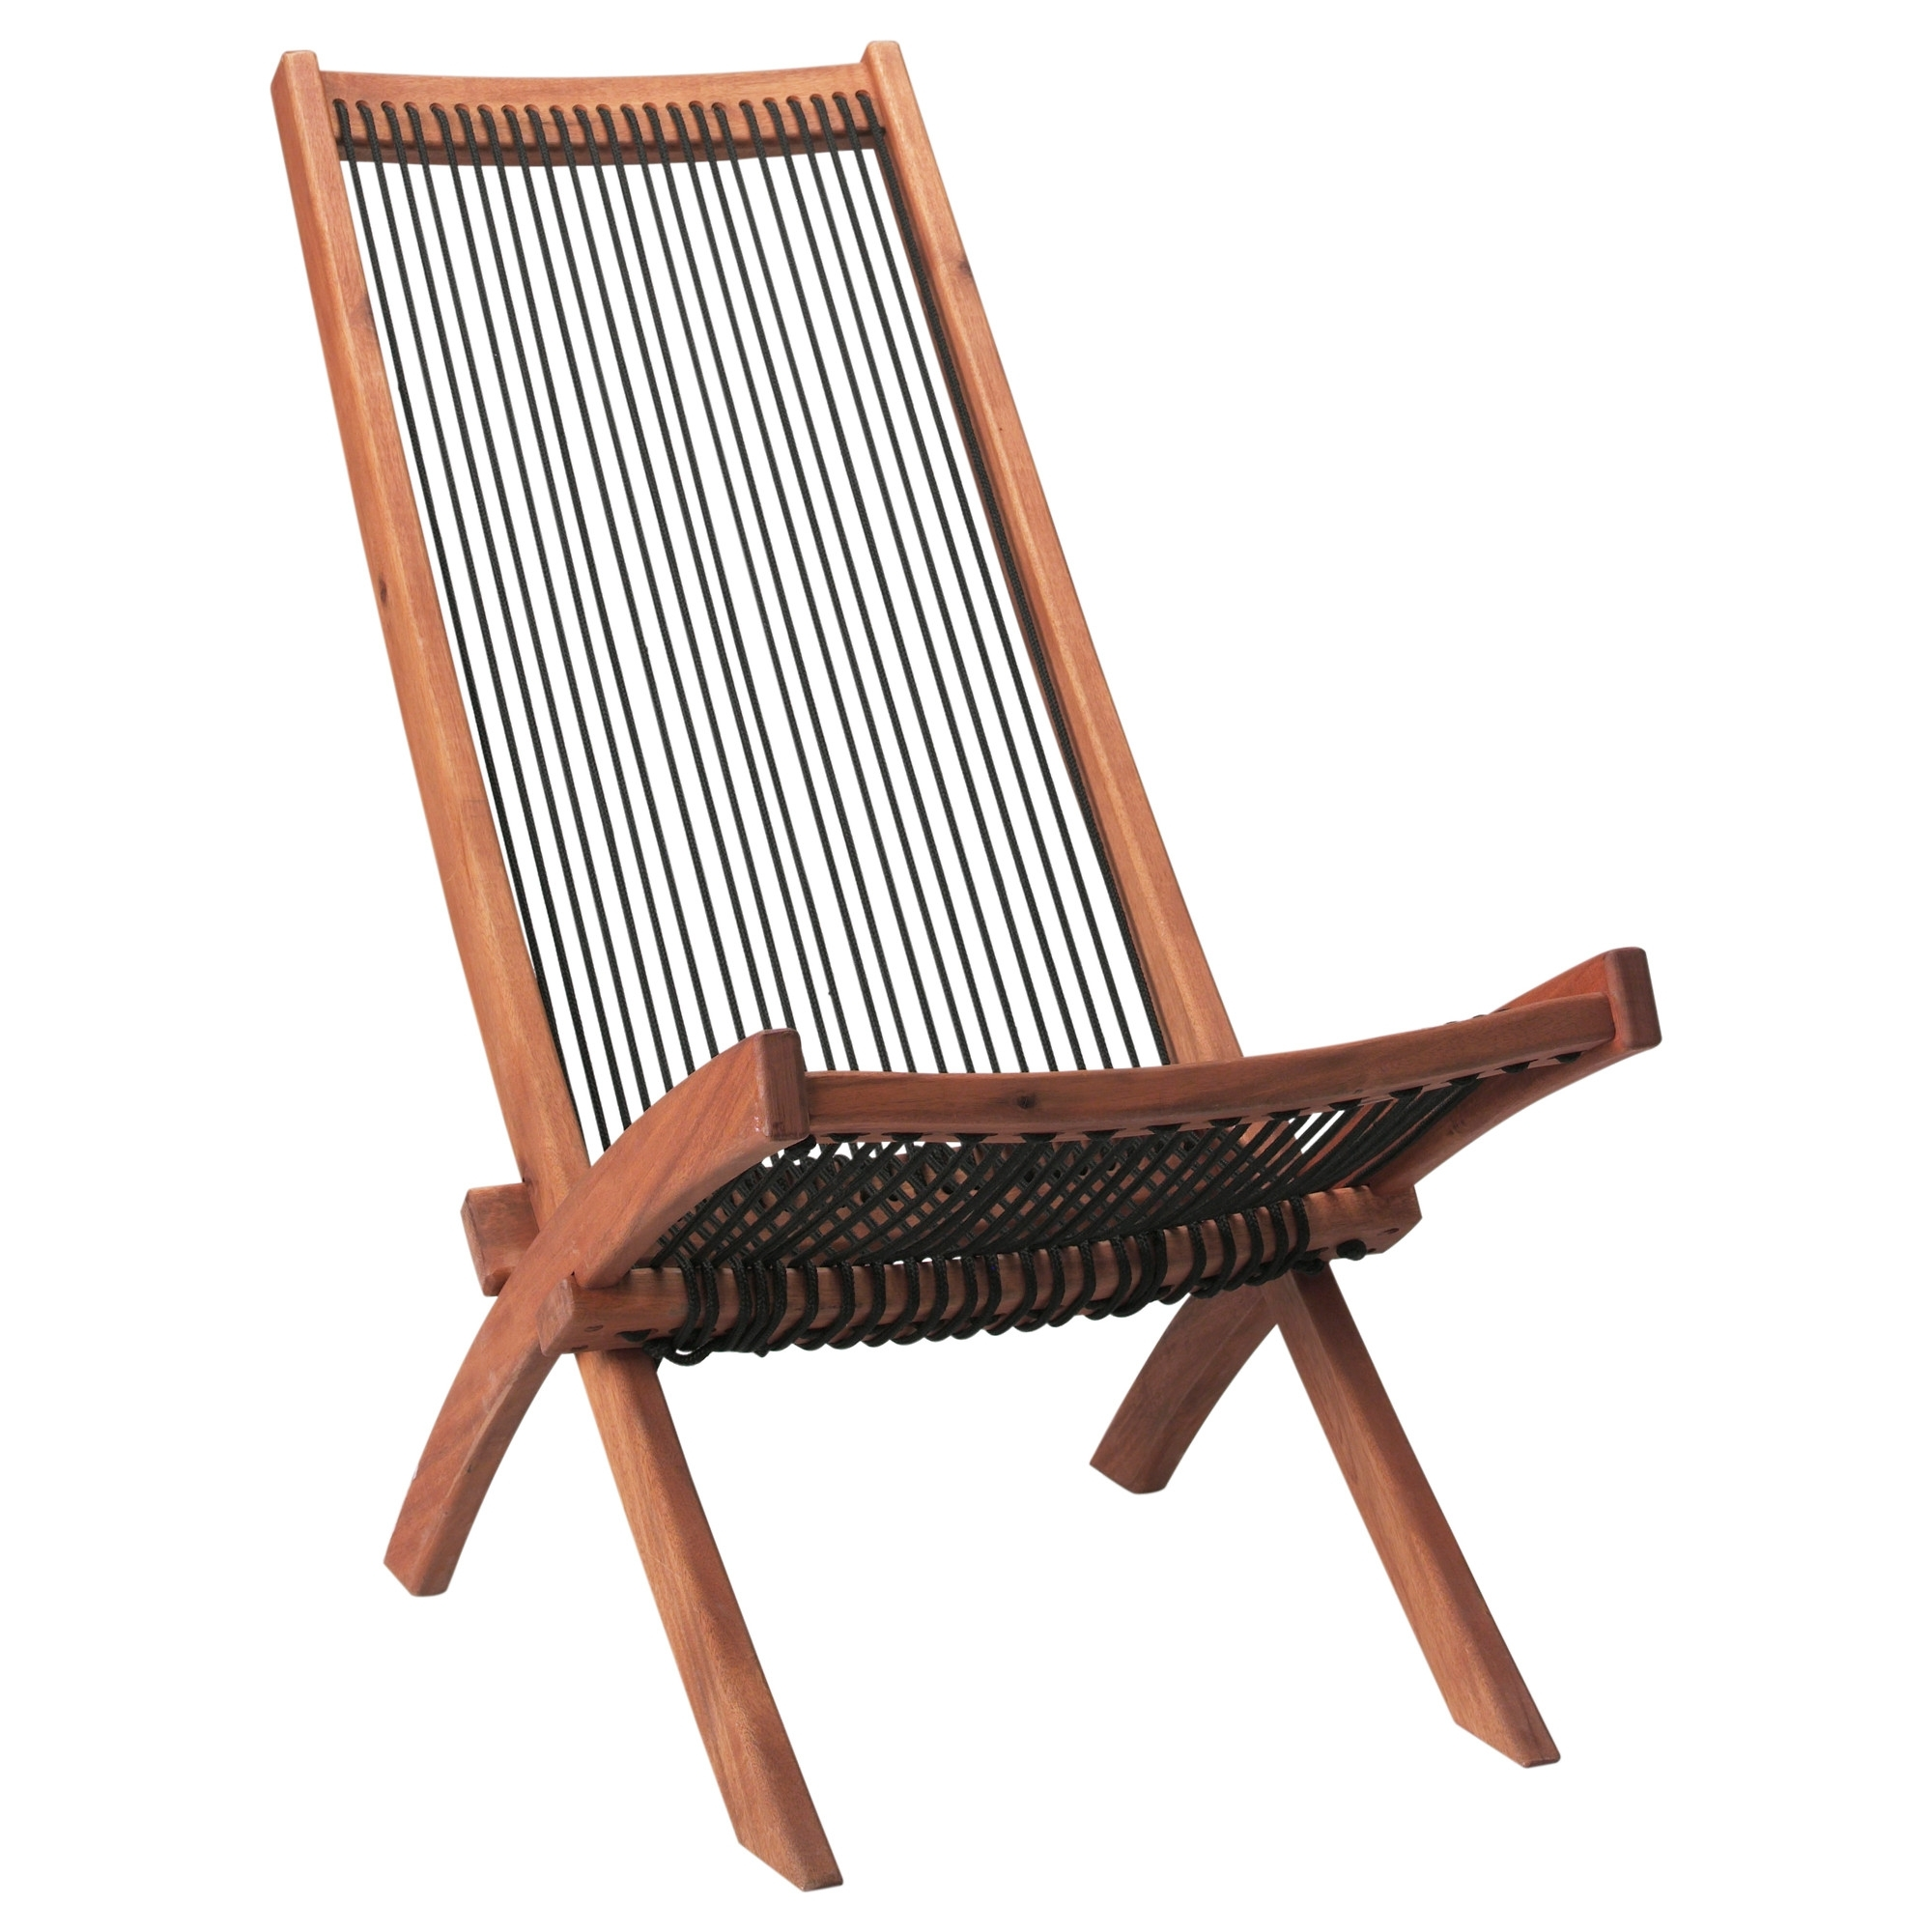 Brommö Chaise, Outdoor – Ikea For 2017 Outdoor Ikea Chaise Lounge Chairs (View 3 of 15)